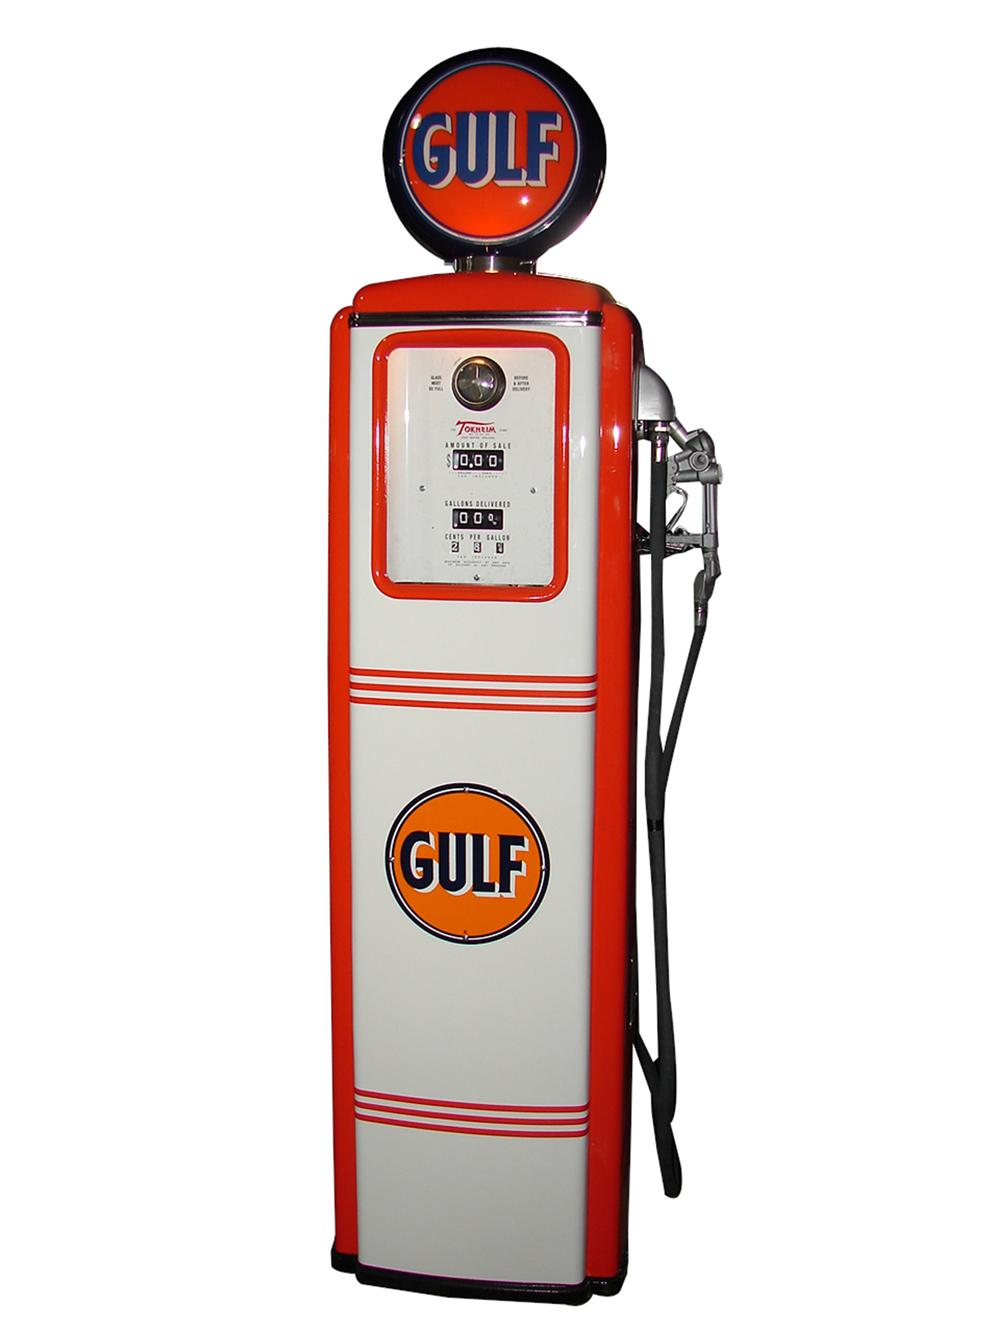 Perfectly restored 1940s-50s Gulf Oil Tokheim model #39 service station gas pump. - Front 3/4 - 97357